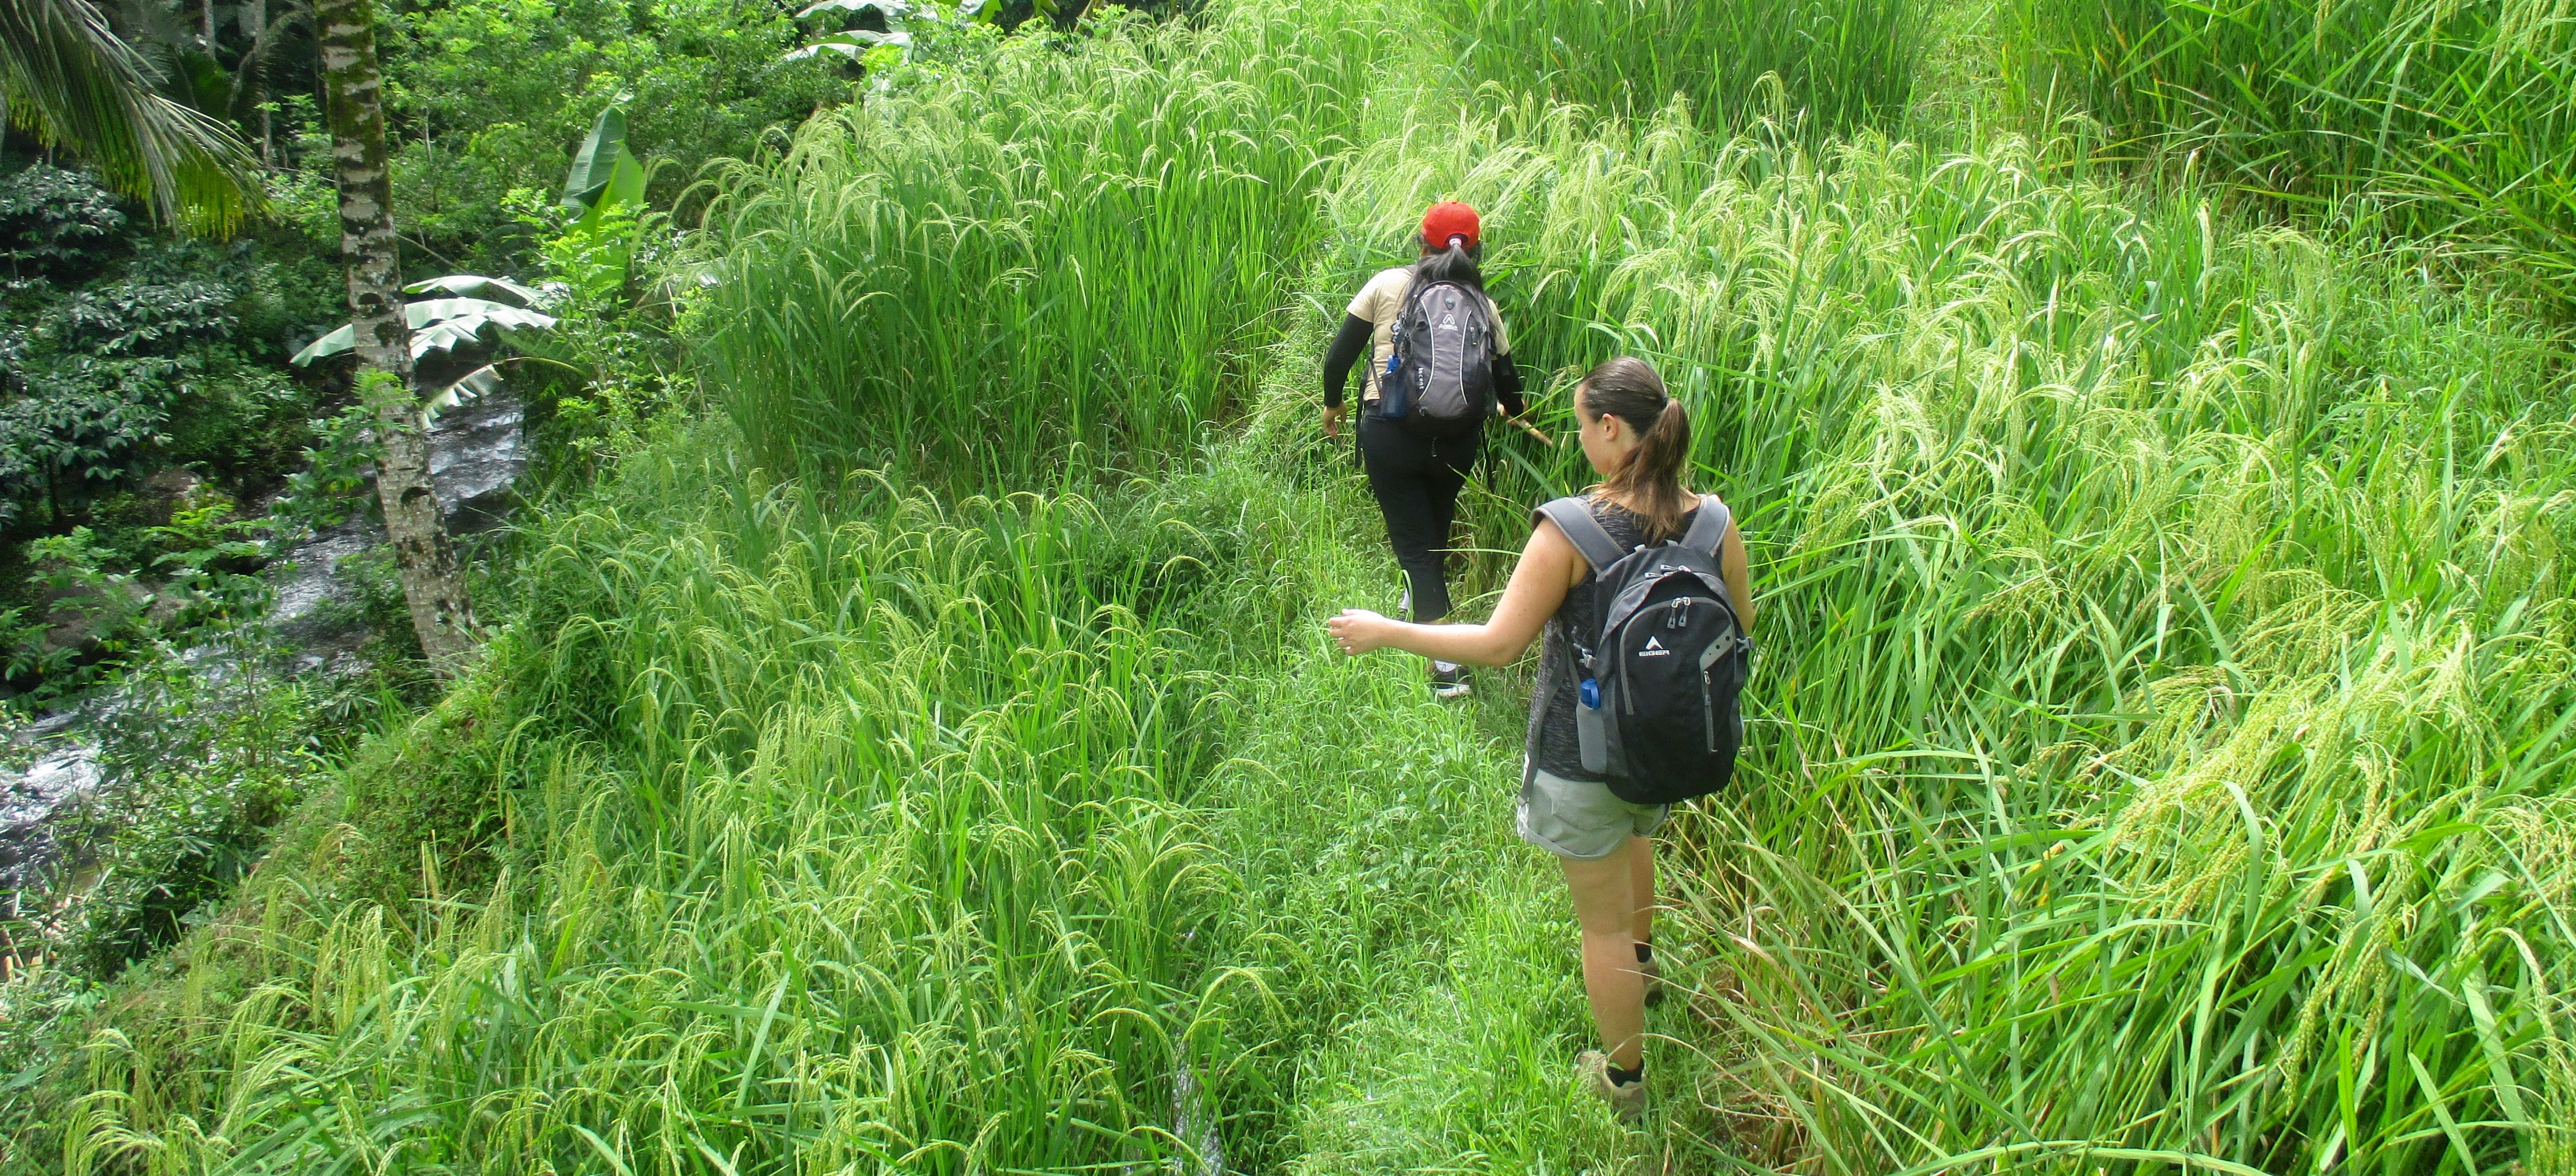 3 hour Treks through Rice Paddies & Food Forests